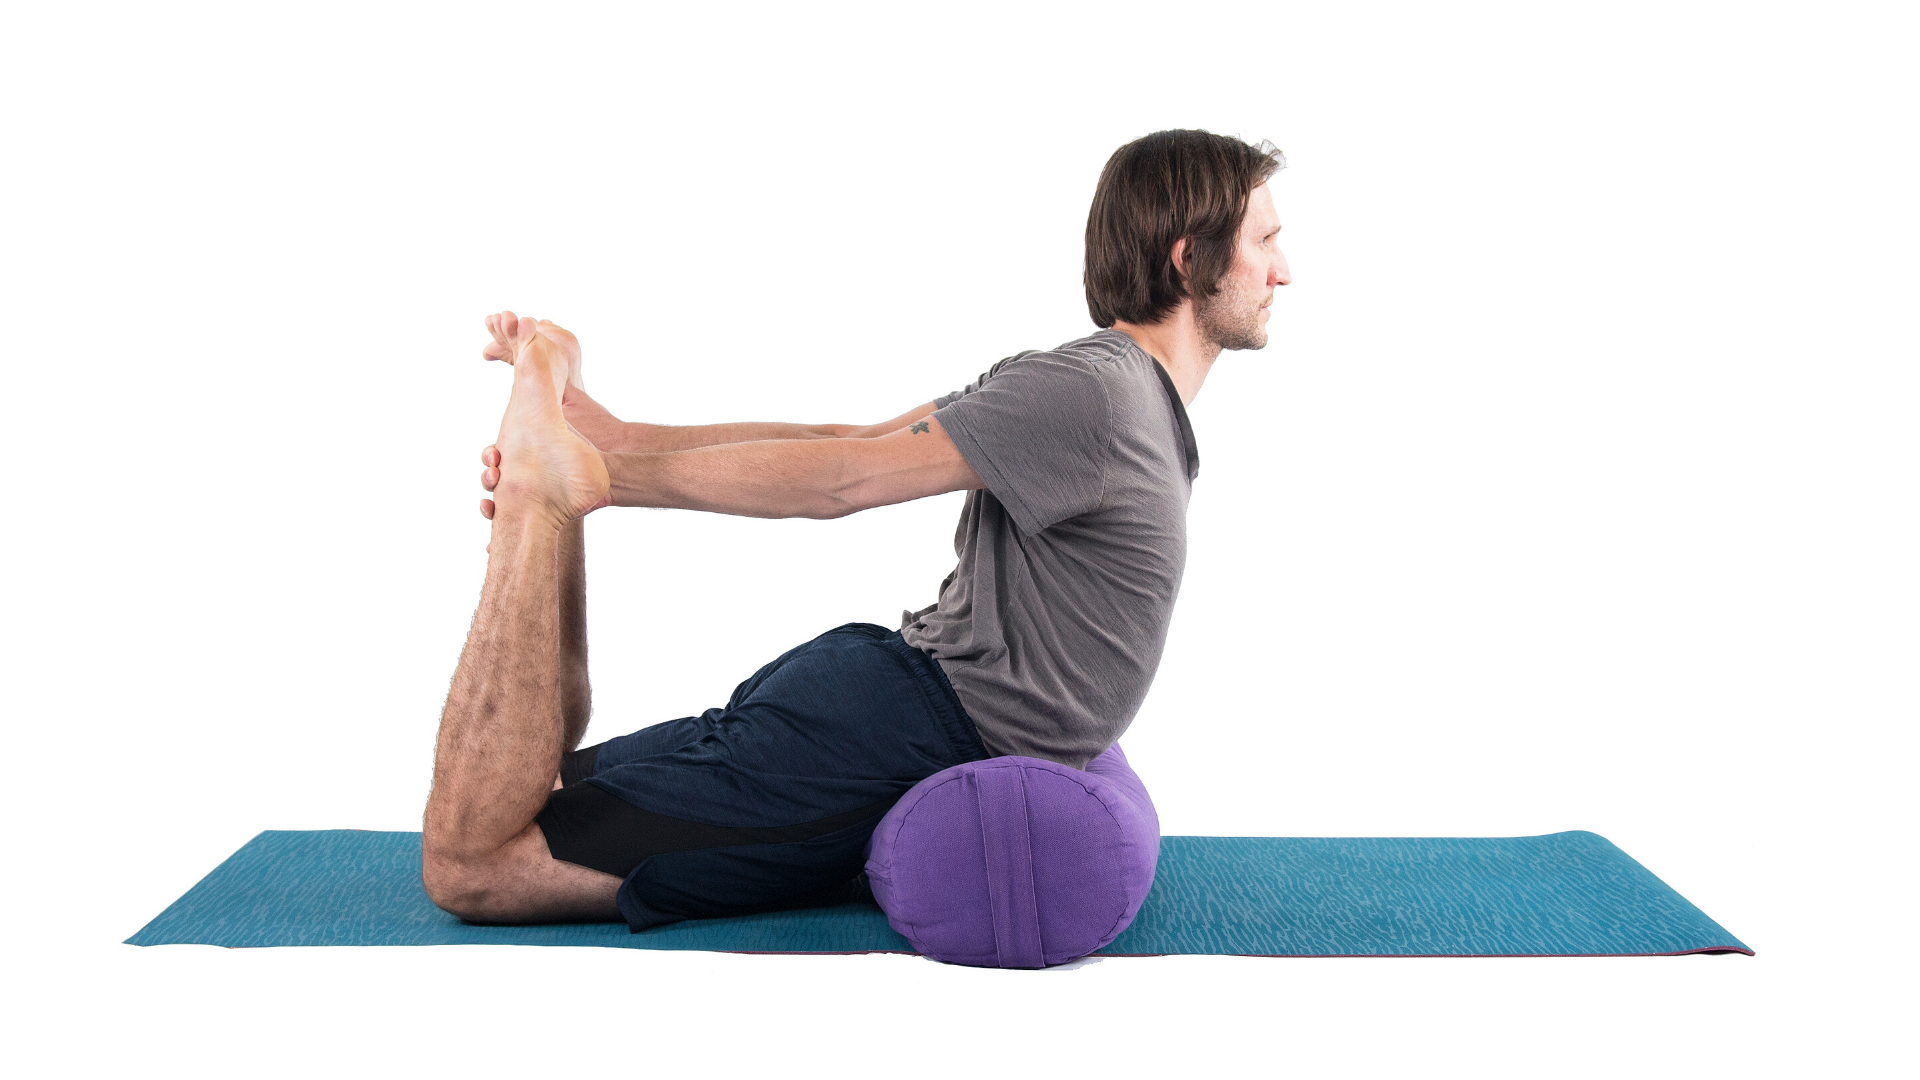 Man practicing dhanurasana bow pose with props.